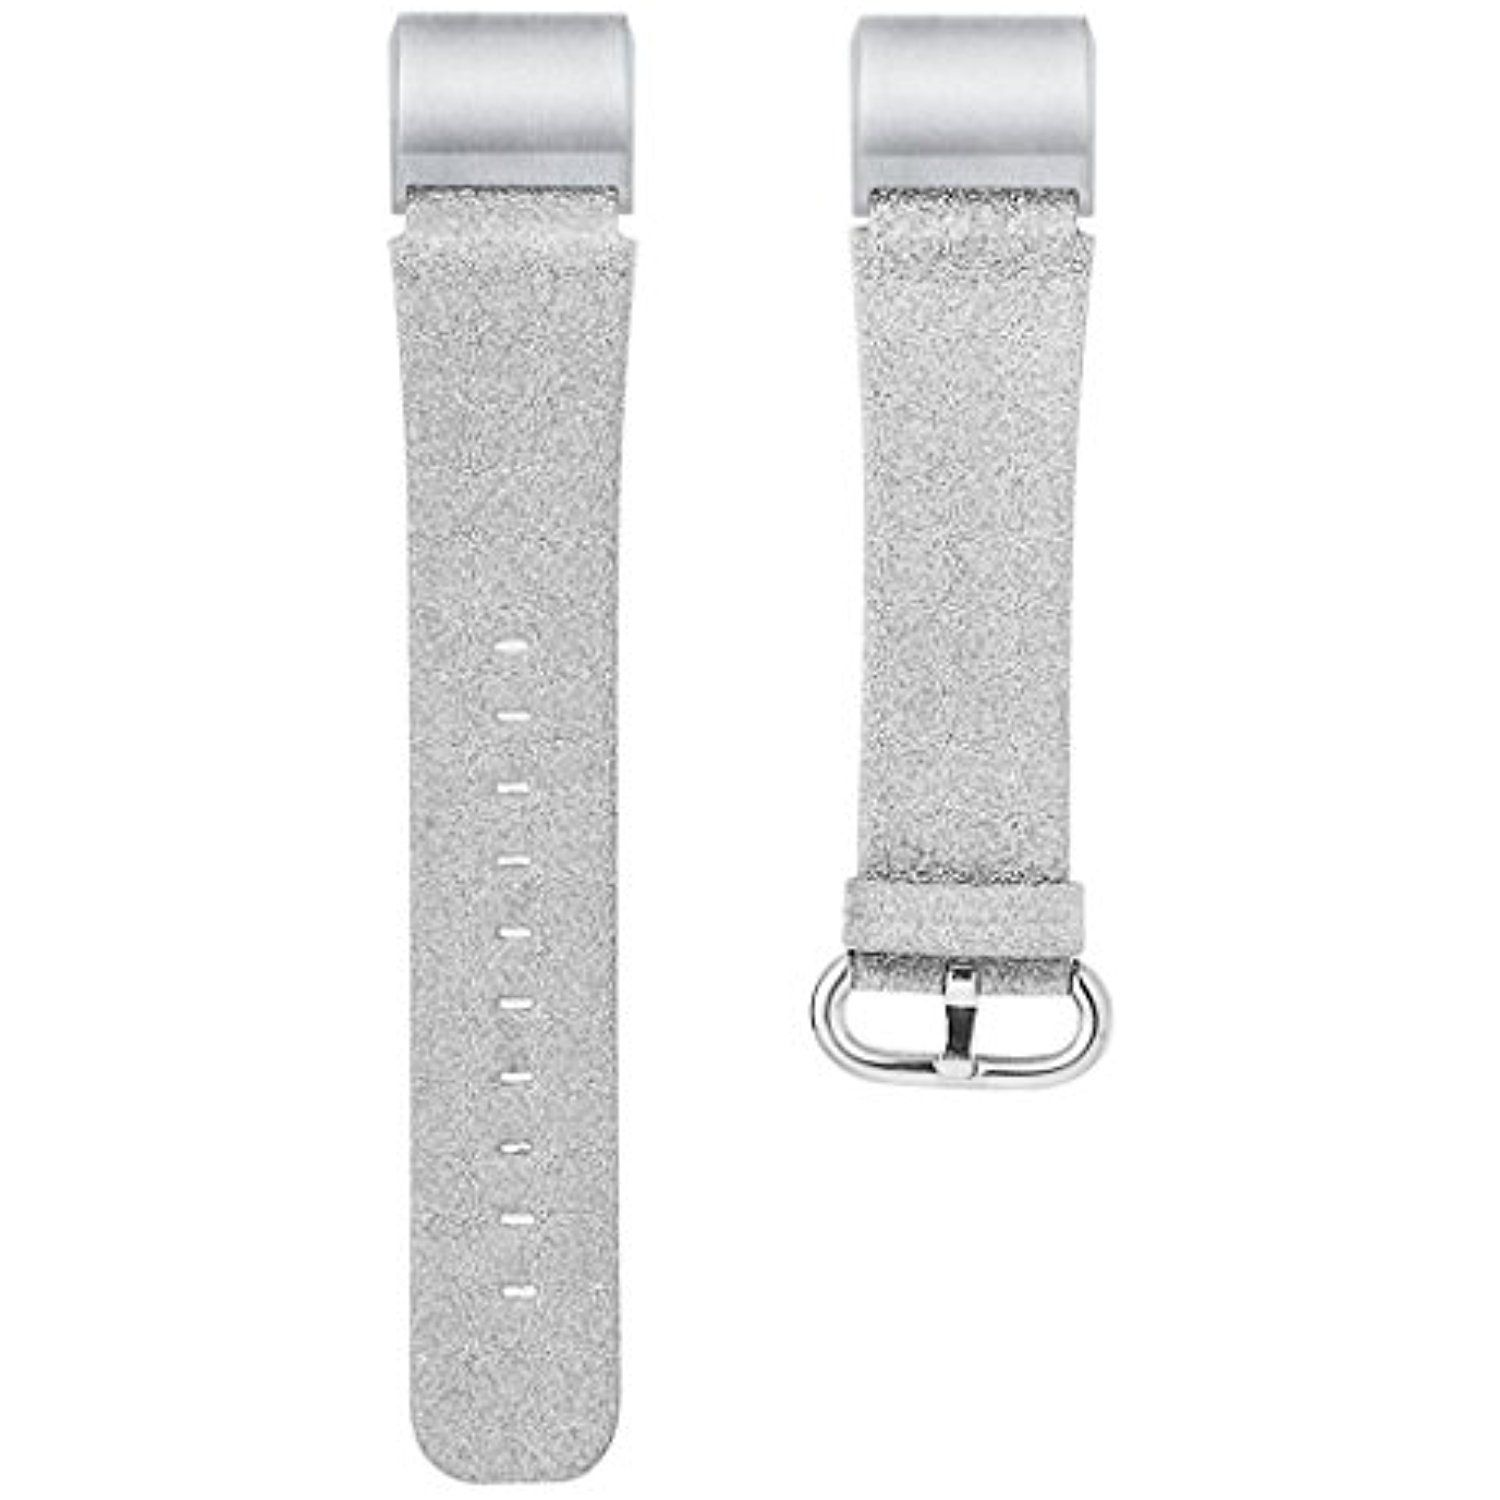 Yrd tech fitbit charge sparkling leather band bracelet adjustable